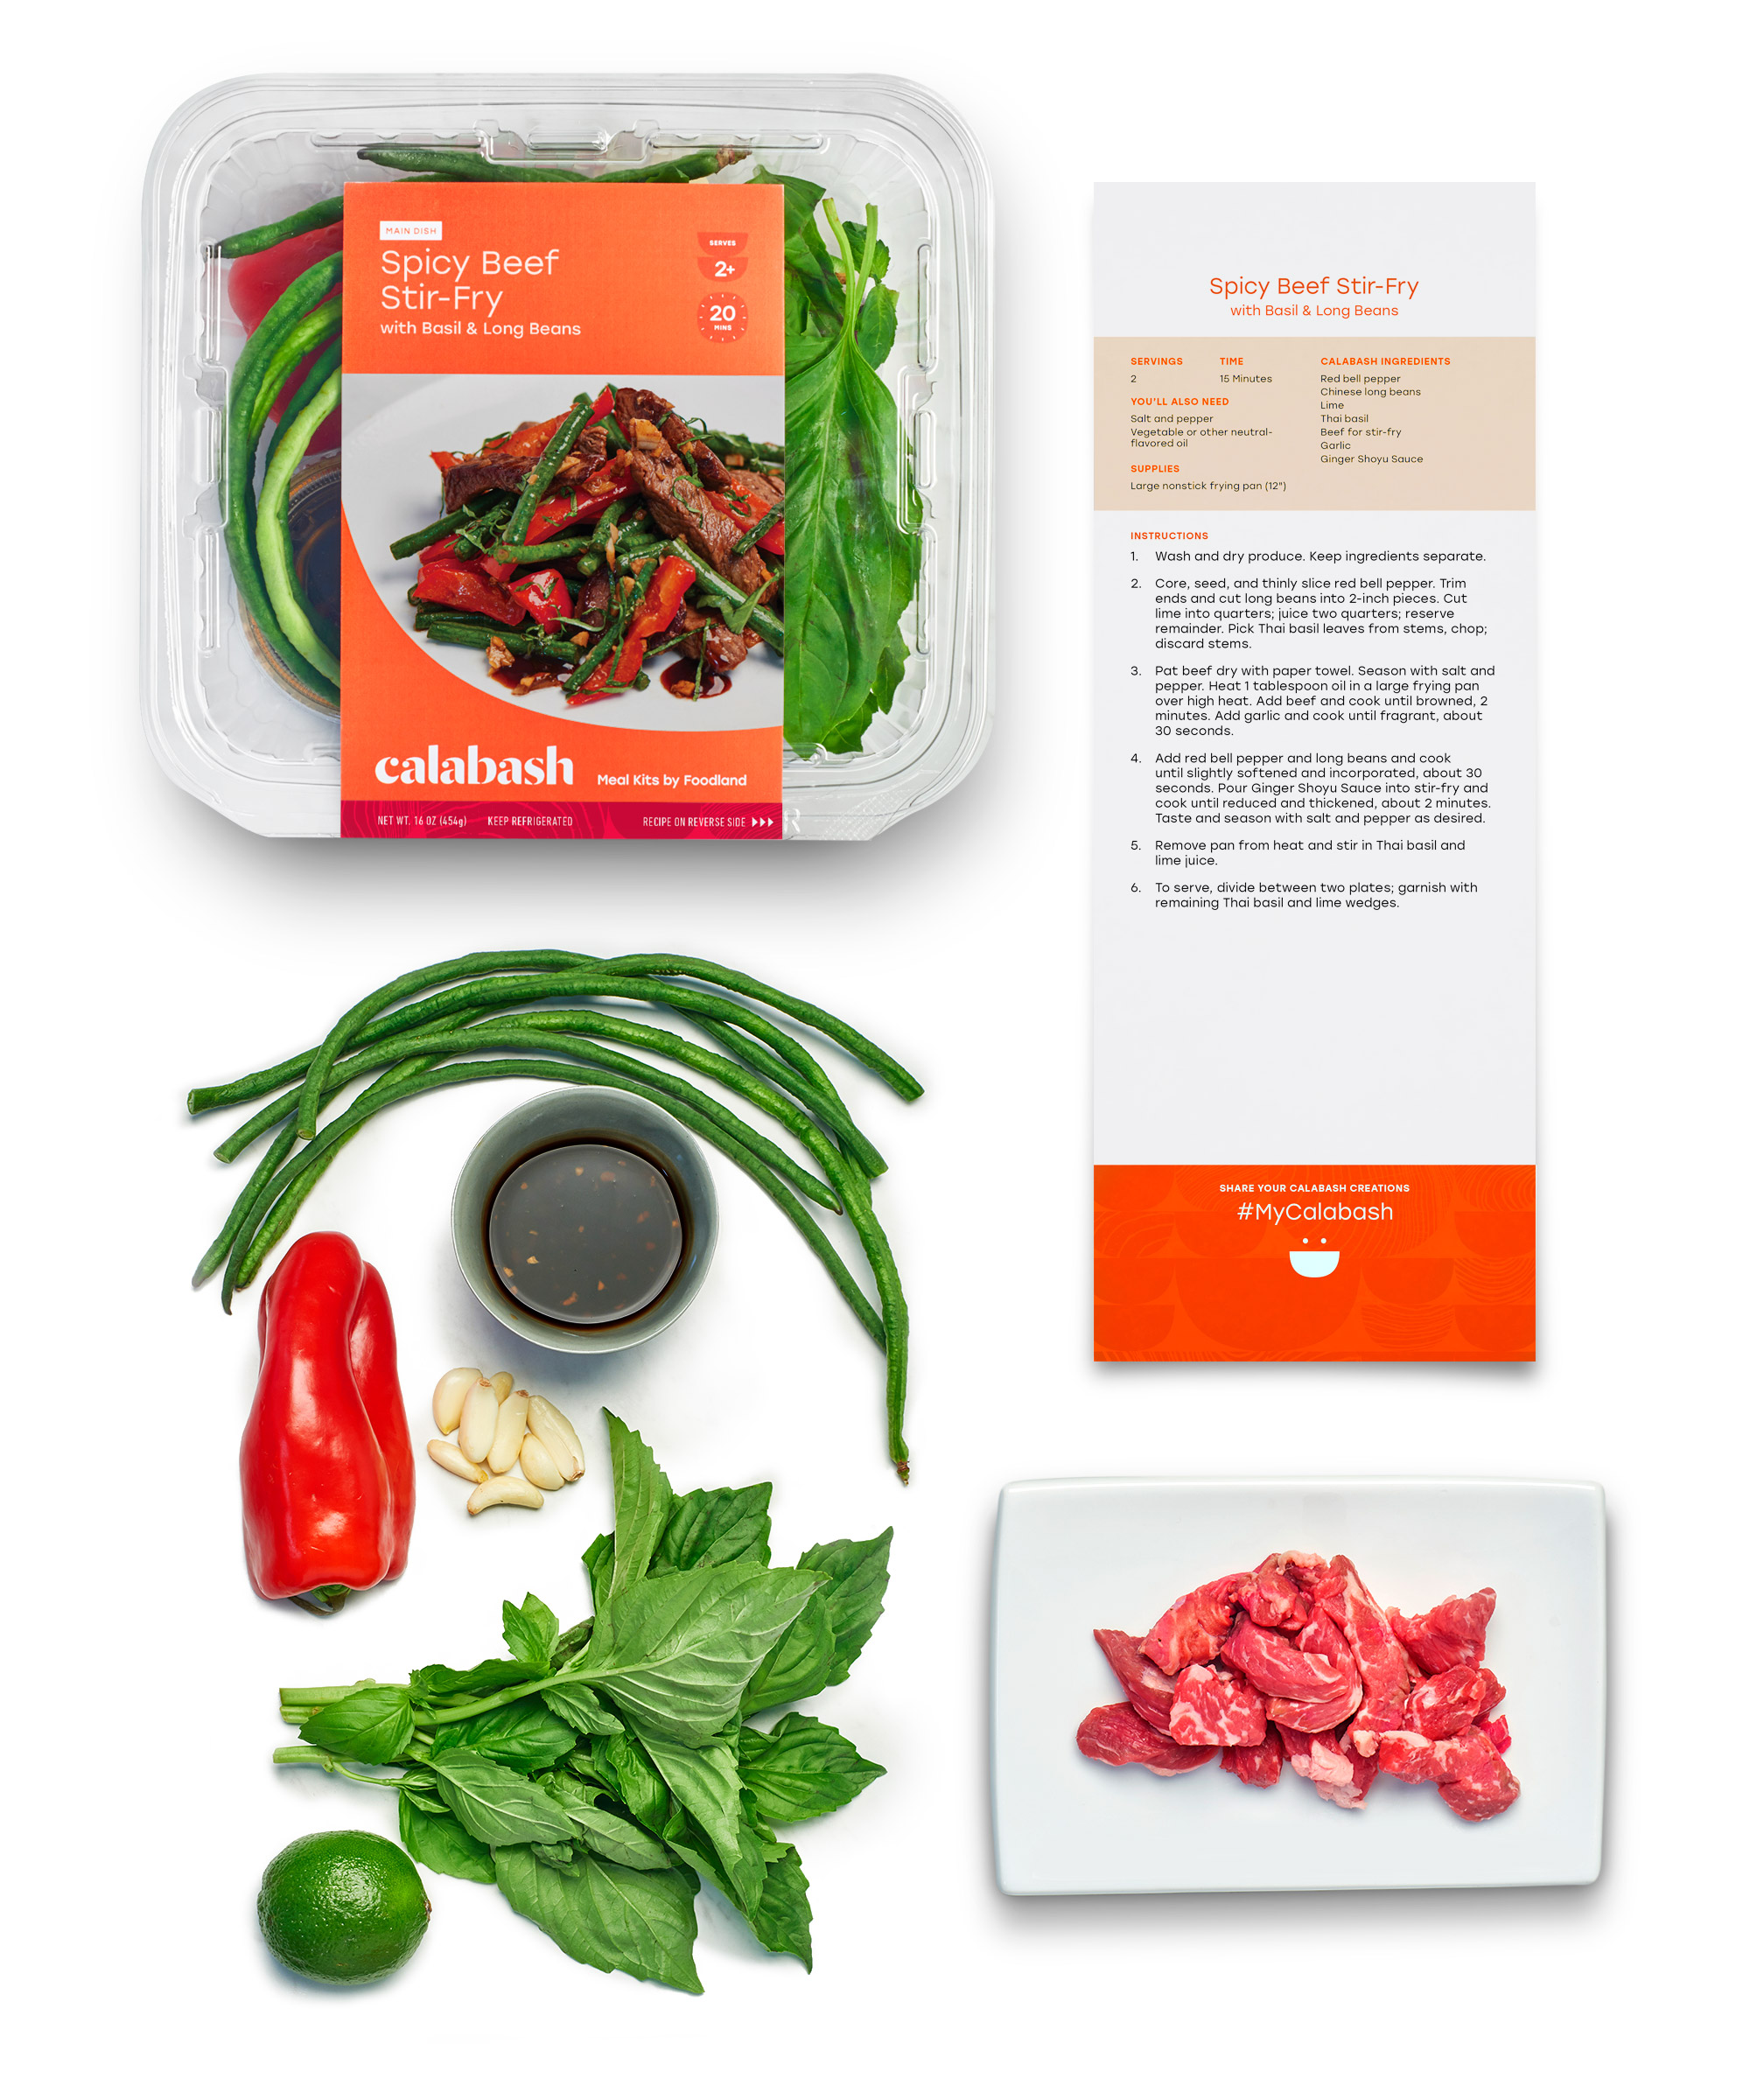 What's in a meal kit? - Whether it is a main or side dish, each Calabash kit contains everything you need for delicious, convenient meals that can be made at home in about 30 minutes.Chef-Designed RecipesWith step-by-step instructions located on the back of the packaging and online.No Measuring RequiredIngredients are conveniently pre-measured with minimal cutting or chopping.Fresh, Quality IngredientsWe source locally grown products whenever we can to support local farms and ranches.